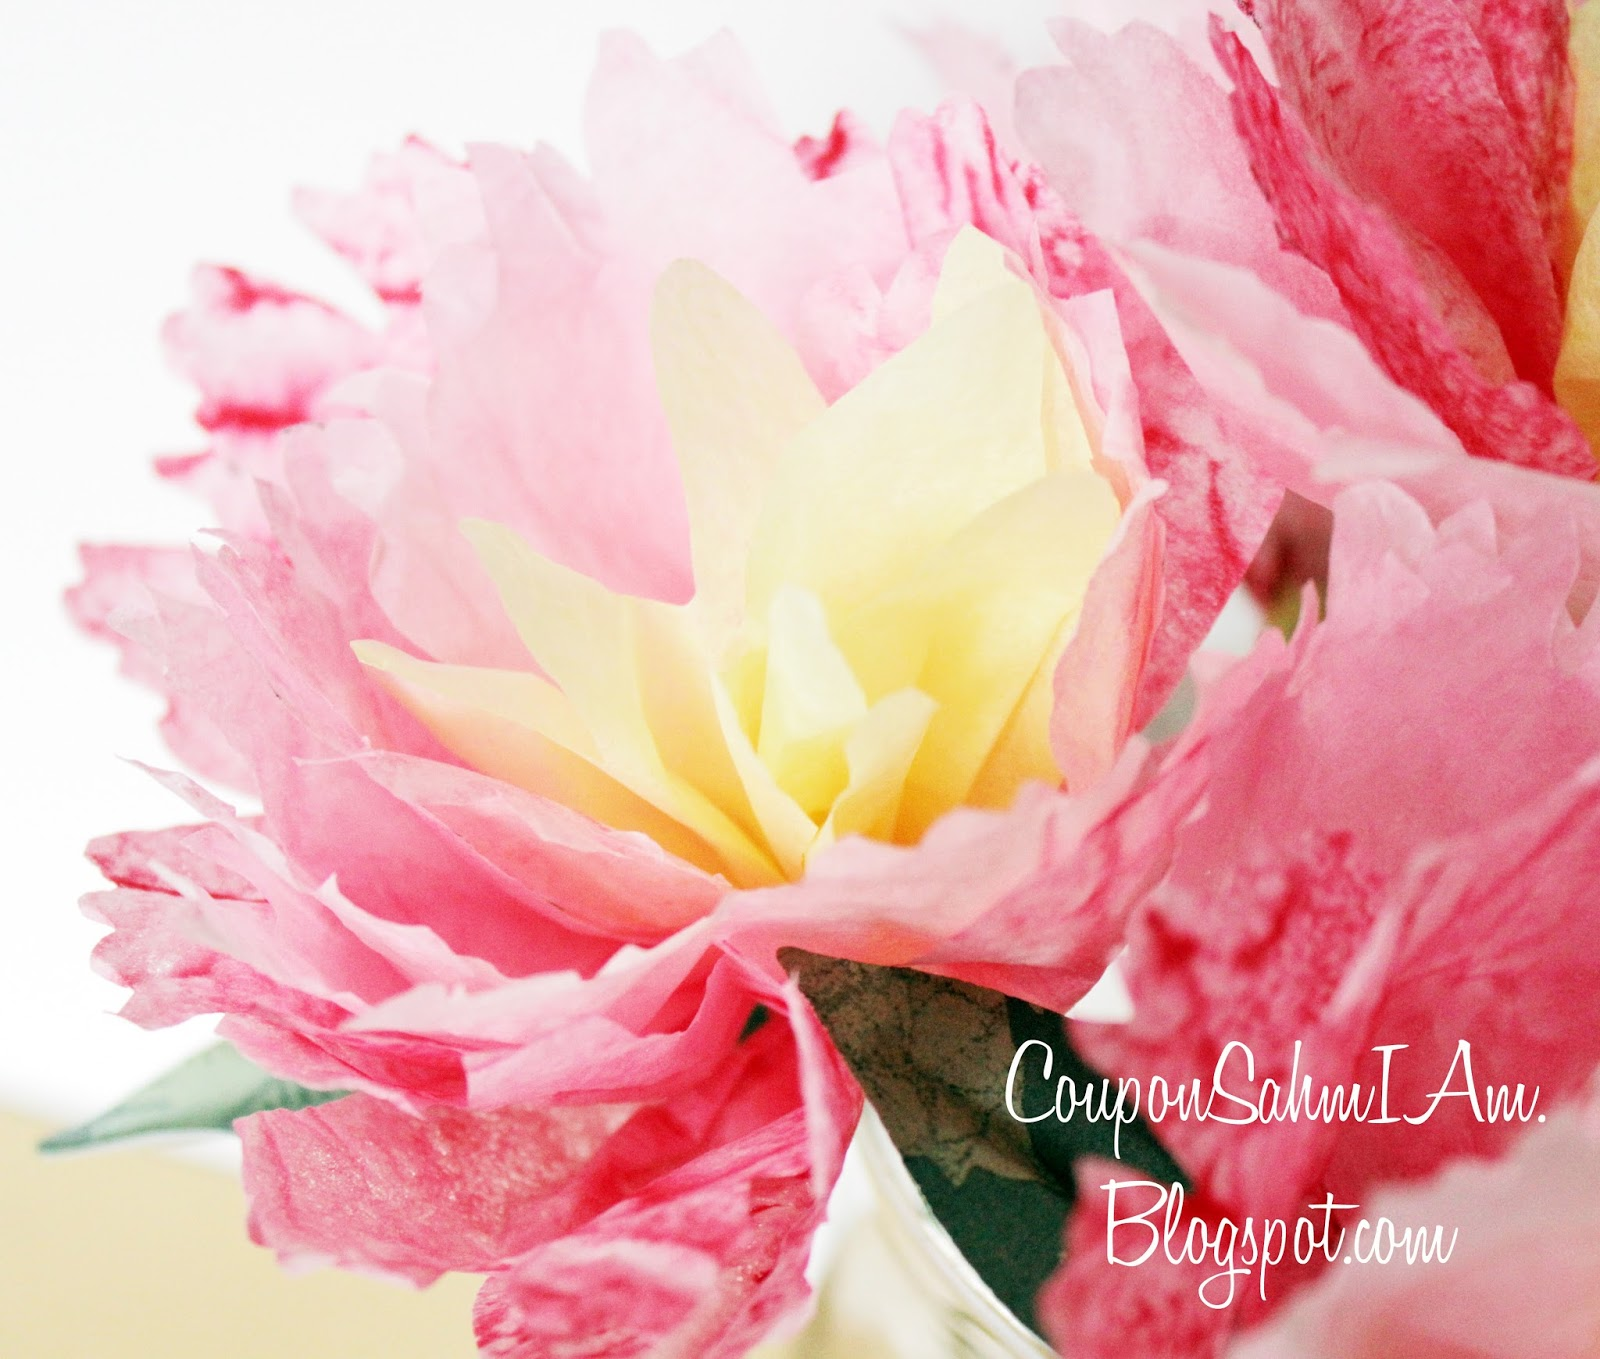 papers and peonies discount code Clear stamps, cardstock, photopolymer stamps, acrylic stamps, paper, craft stamps, stamps, craft supplies, scrapbooking, scrapbooking supplies.